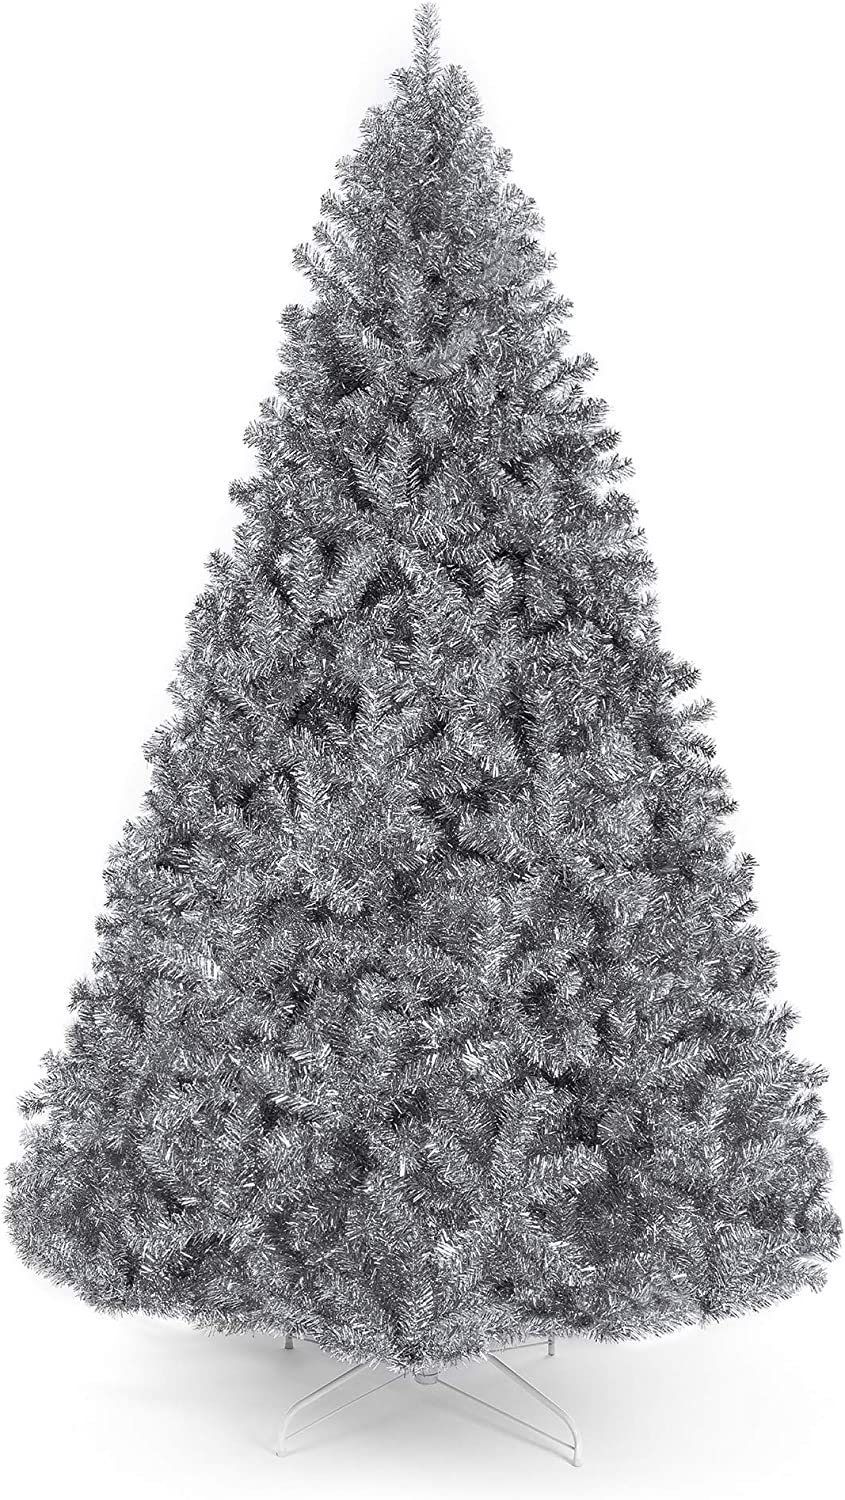 Amazon Com Best Choice Products 7 5ft Artificial Silver Tinsel Christmas Tree Holiday Decoration W 1 749 Branch Tips And Foldable Stand Home Kitchen